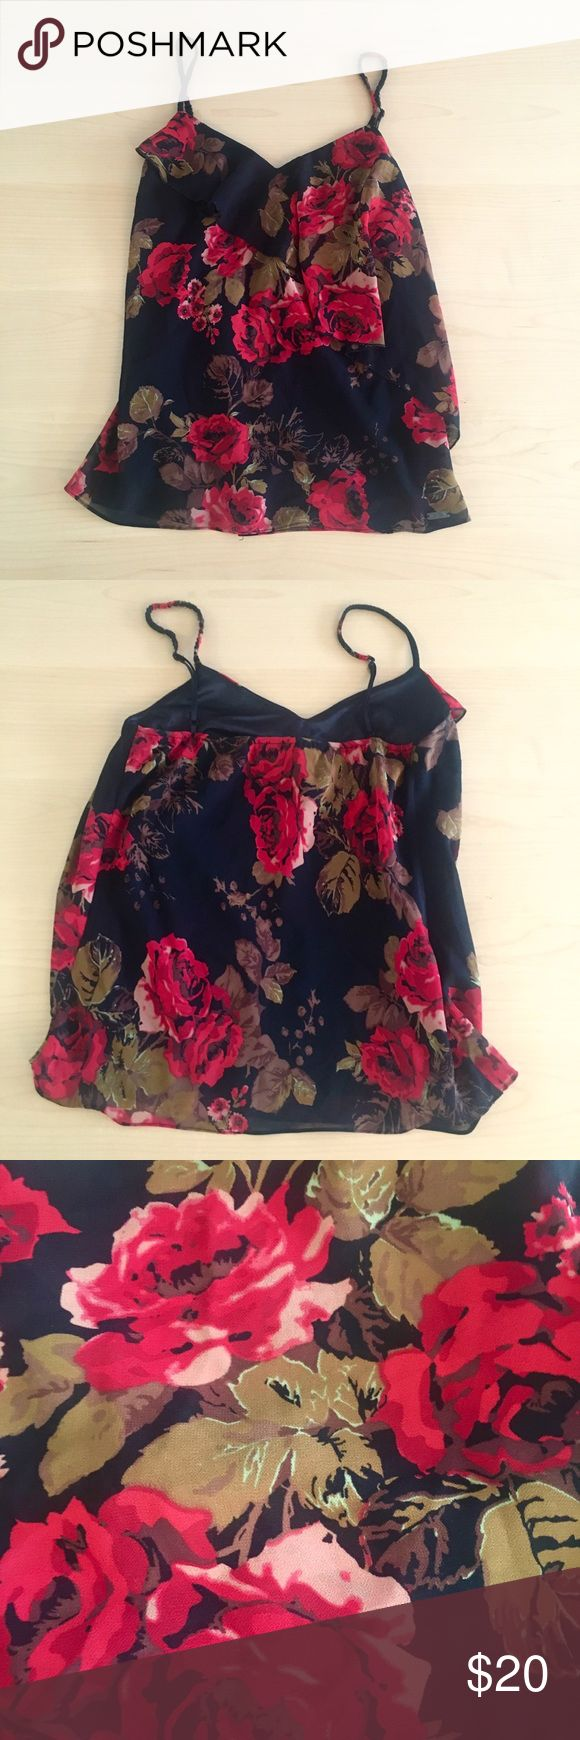 Asymmetrical Chiffon/Silk floral cami by Guess Beautiful cami by Guess! Flowy chiffon layer with an asymmetrical ruffle. Silky underlayer that makes it really comfortable to wear. Adjustable straps. Worn many times but in like new condition. Guess Tops Camisoles